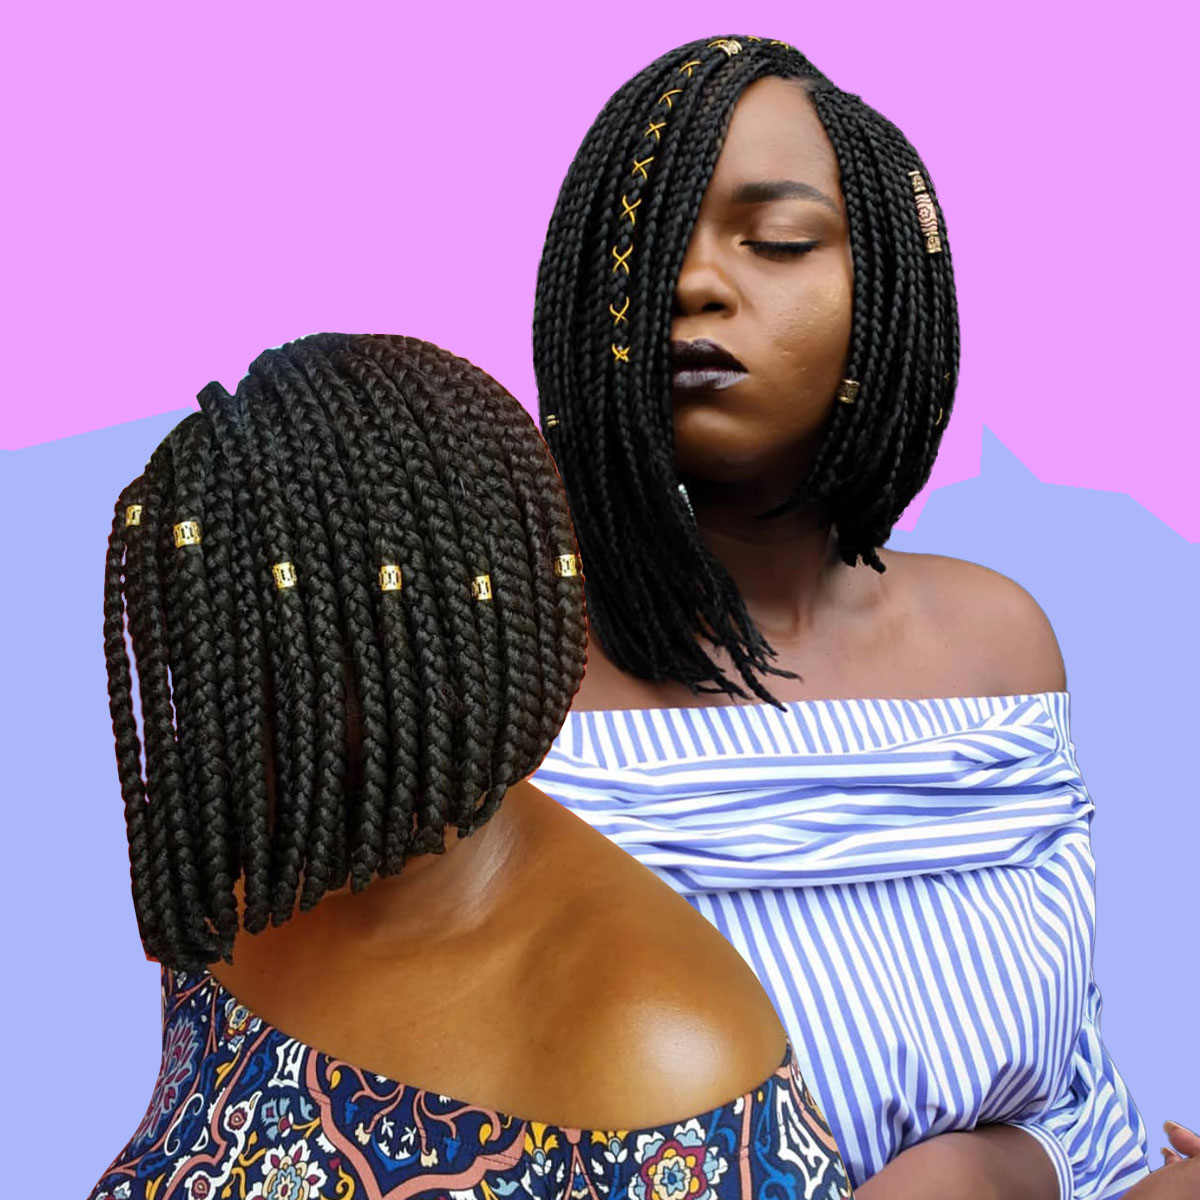 17 Beautiful Braided Bobs From Instagram You Need To Give A Try Within Widely Used Short And Chic Bob Braid Hairstyles (View 14 of 20)